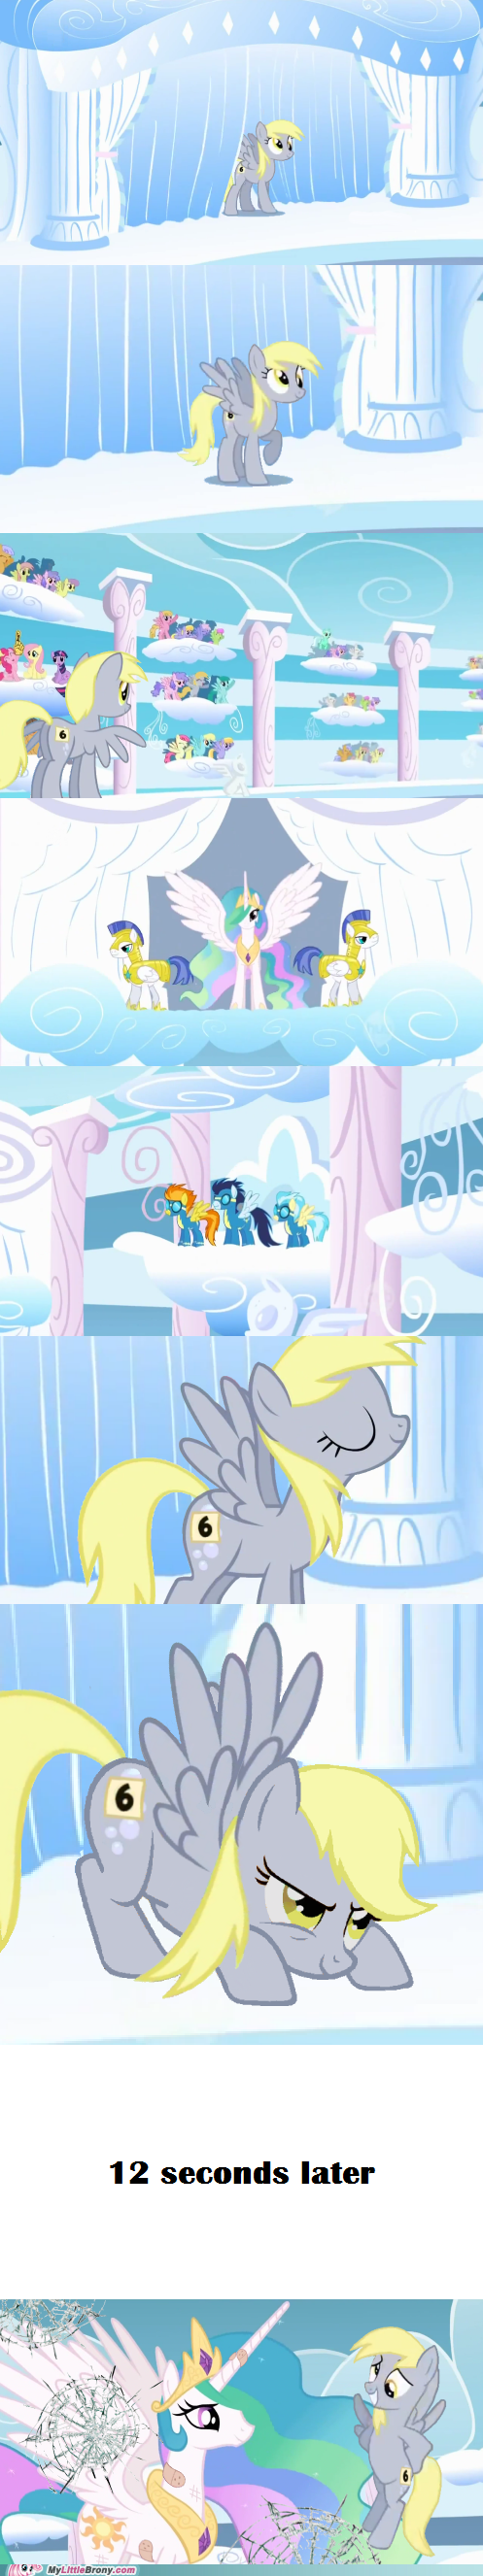 derpy hooves,derp,comic,competition